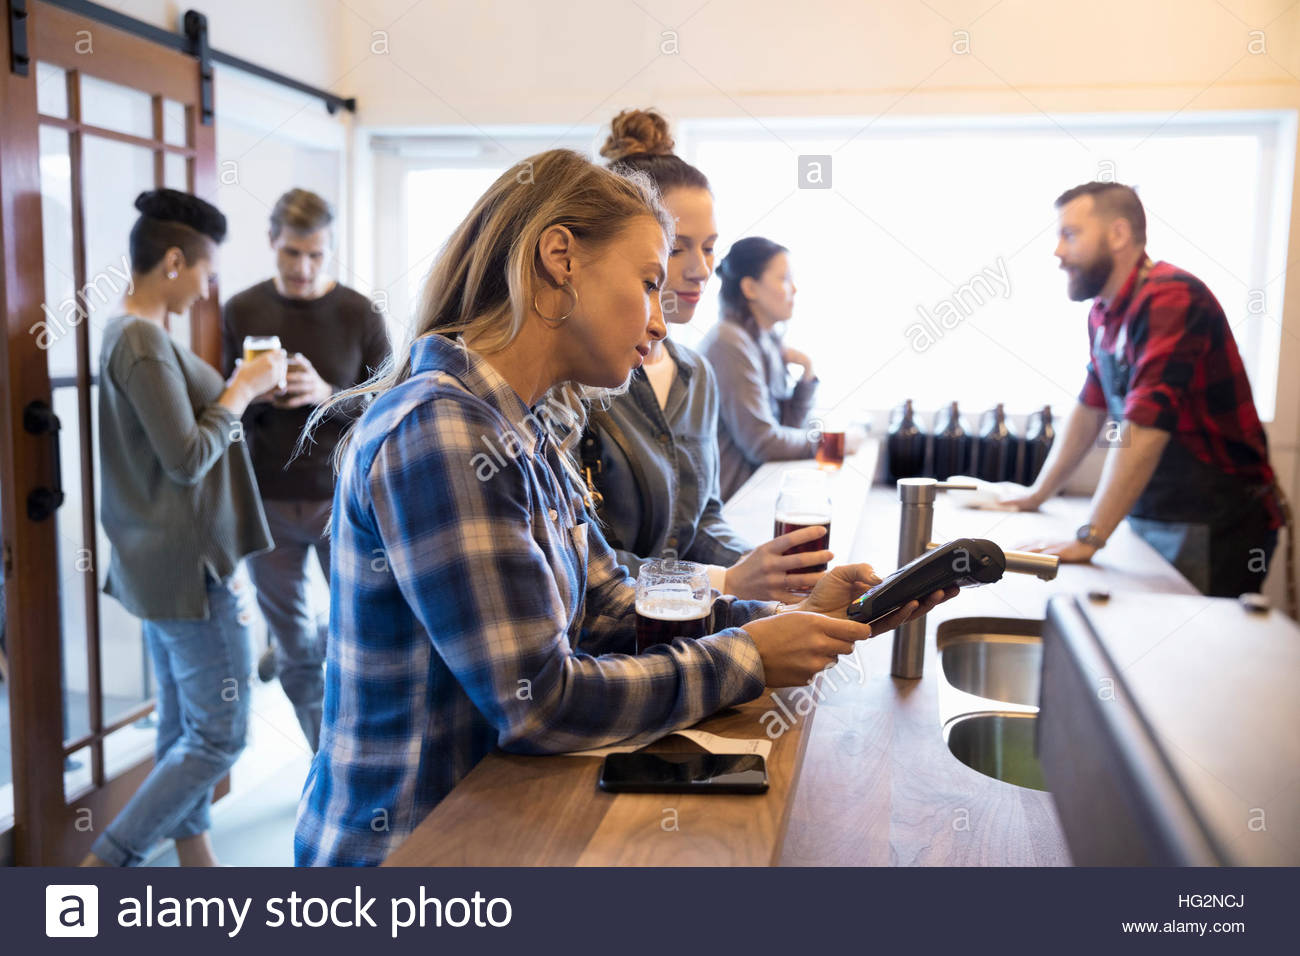 Female friends paying for beers using pin entry credit card reader at brewery tasting room bar - Stock Image